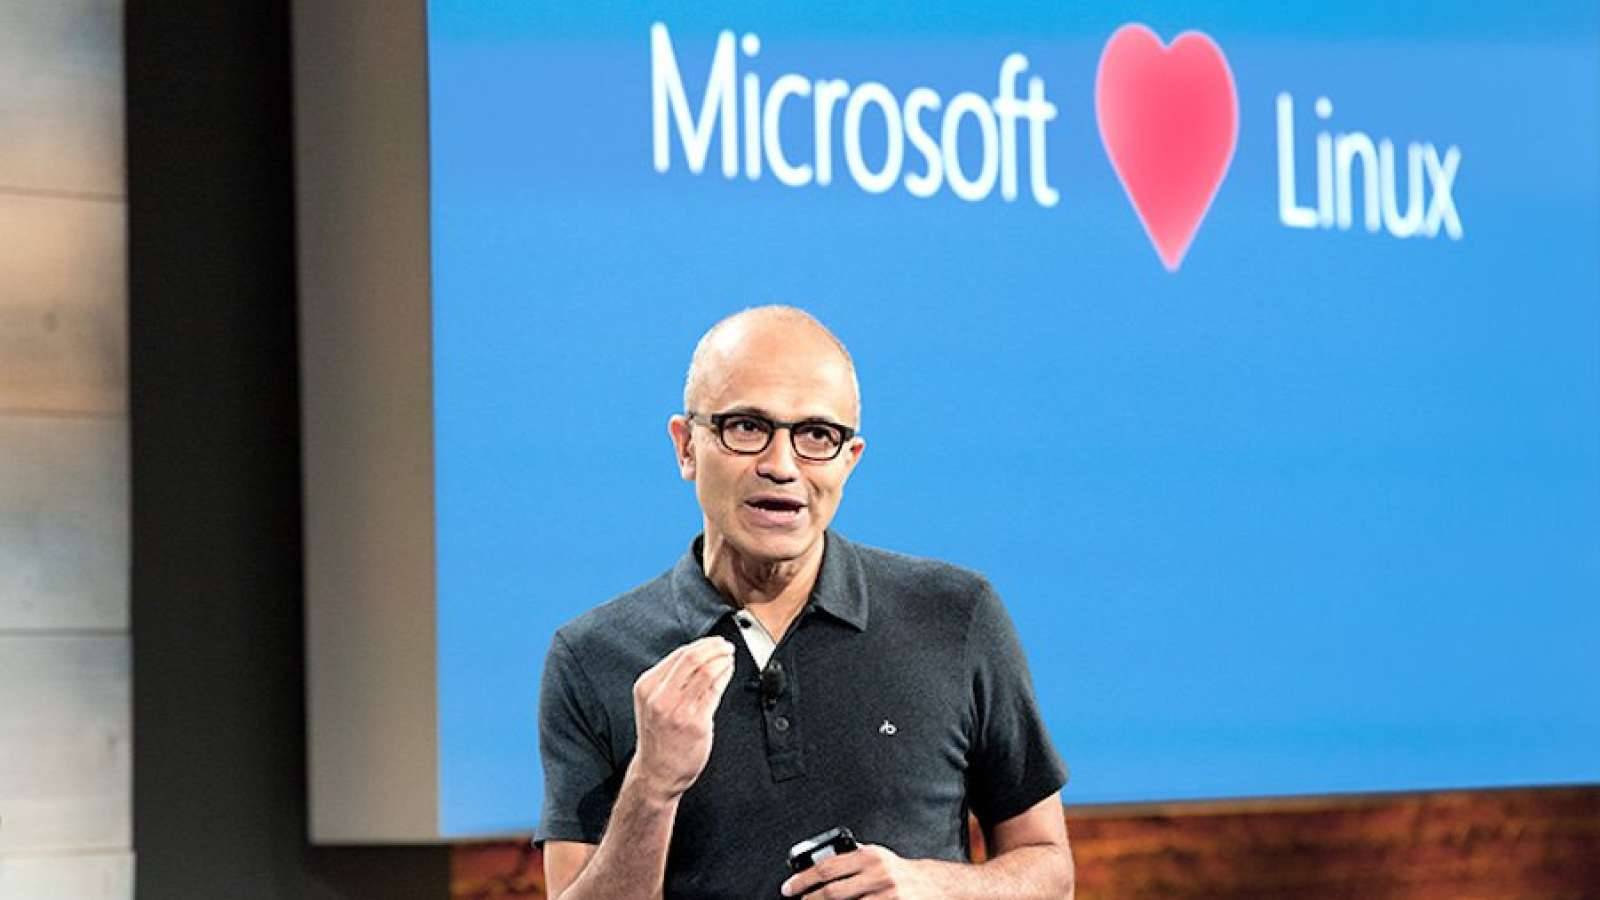 Microsoft just open-sourced 60,000 of its patents